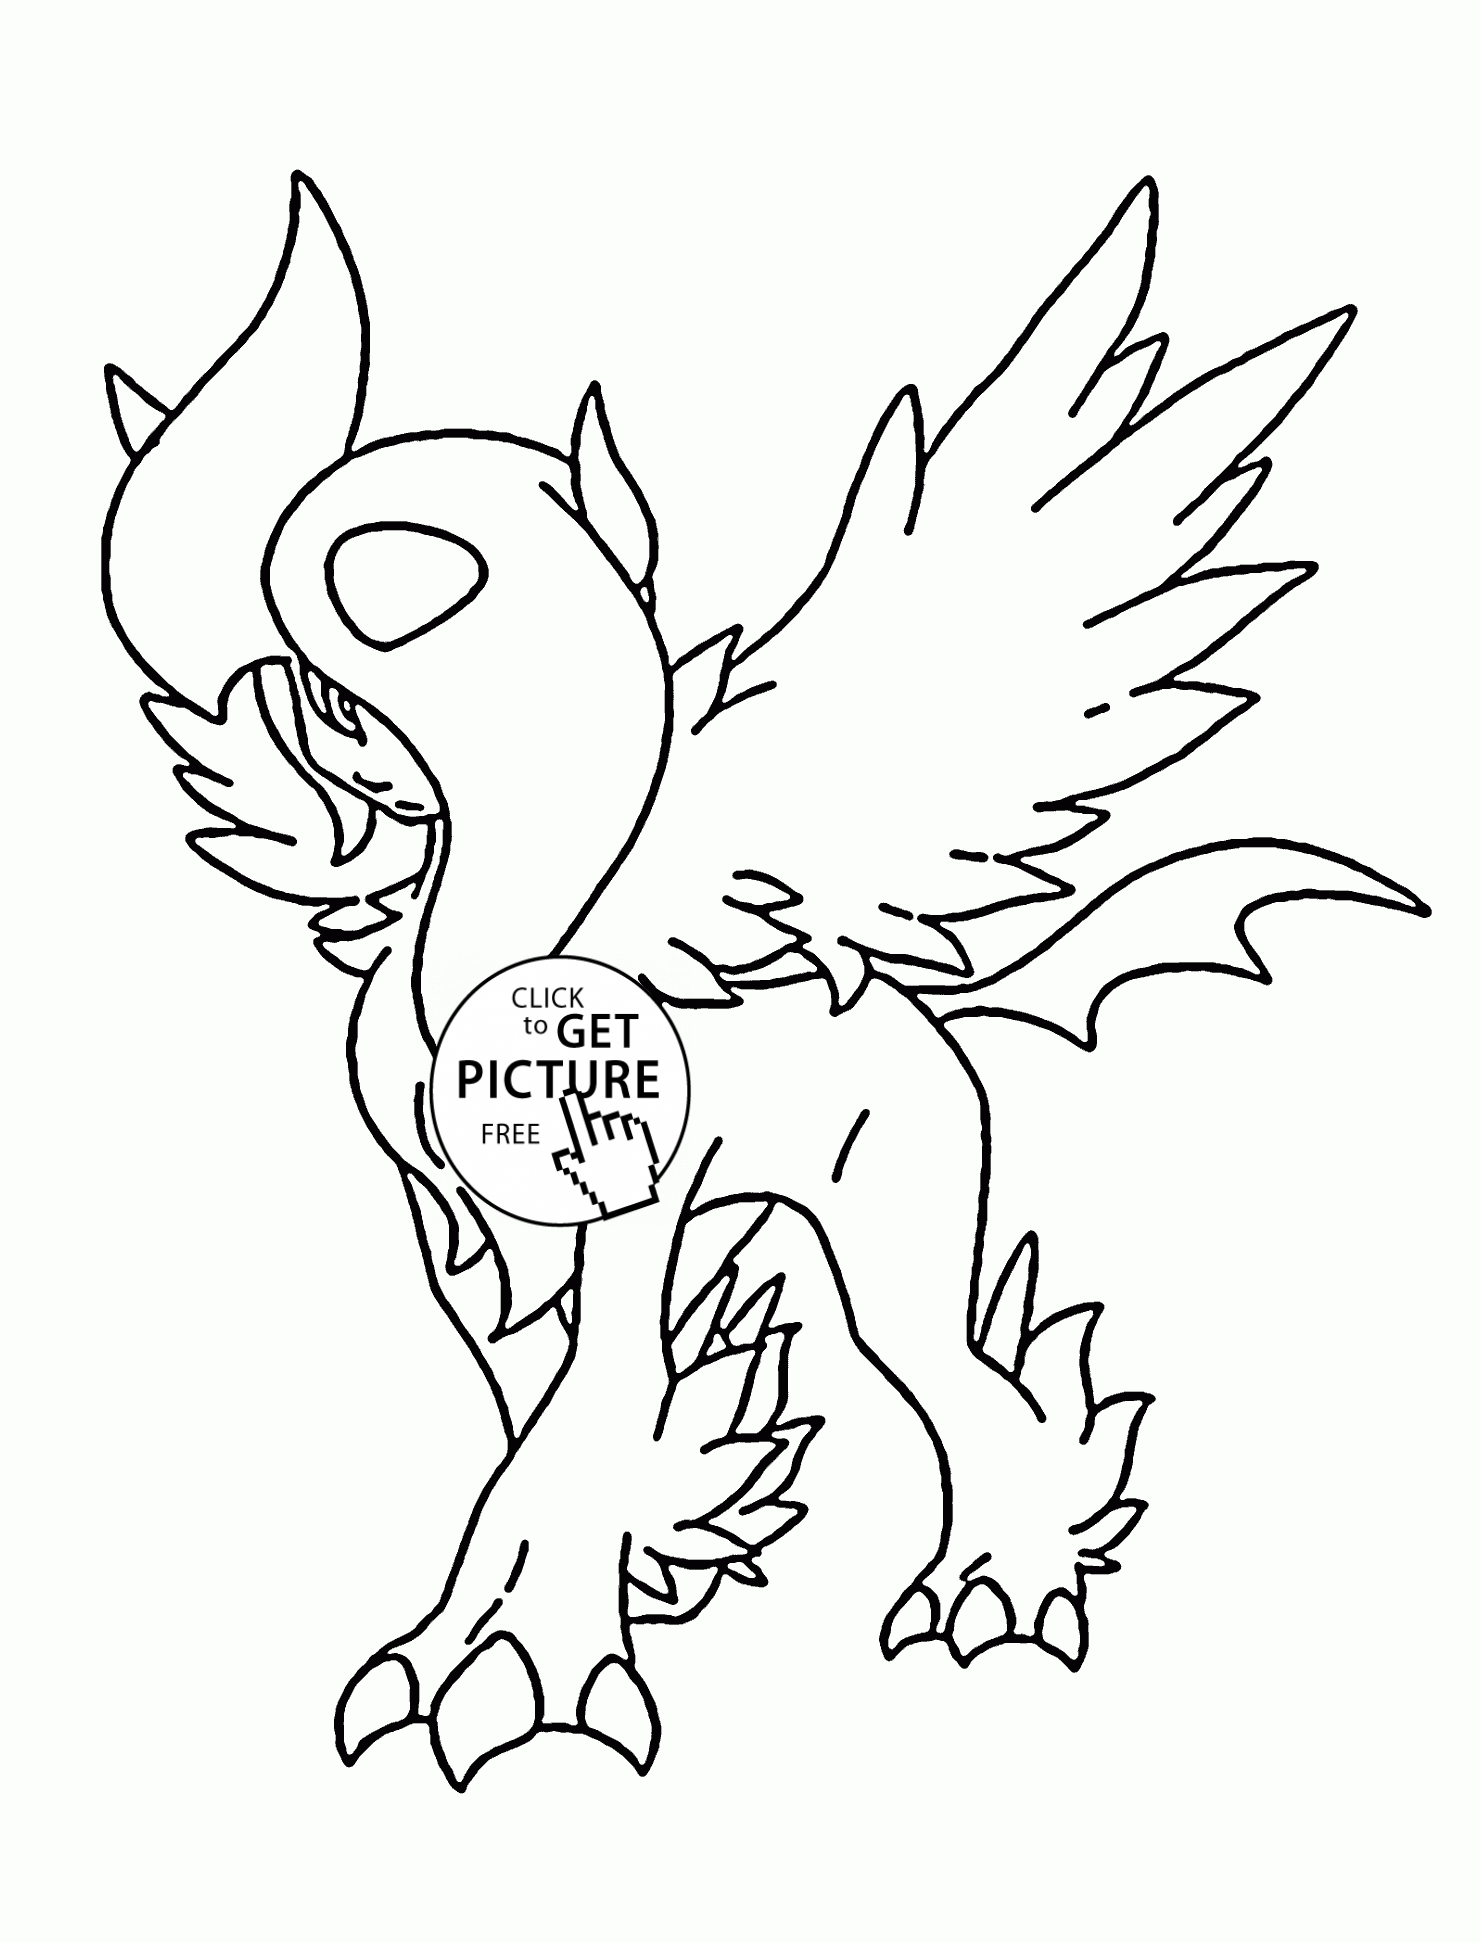 Charizard Coloring Pages Mega Pokemon Coloring Pages In Color Mega  Charizard Y Pokemon Ruva - birijus.com